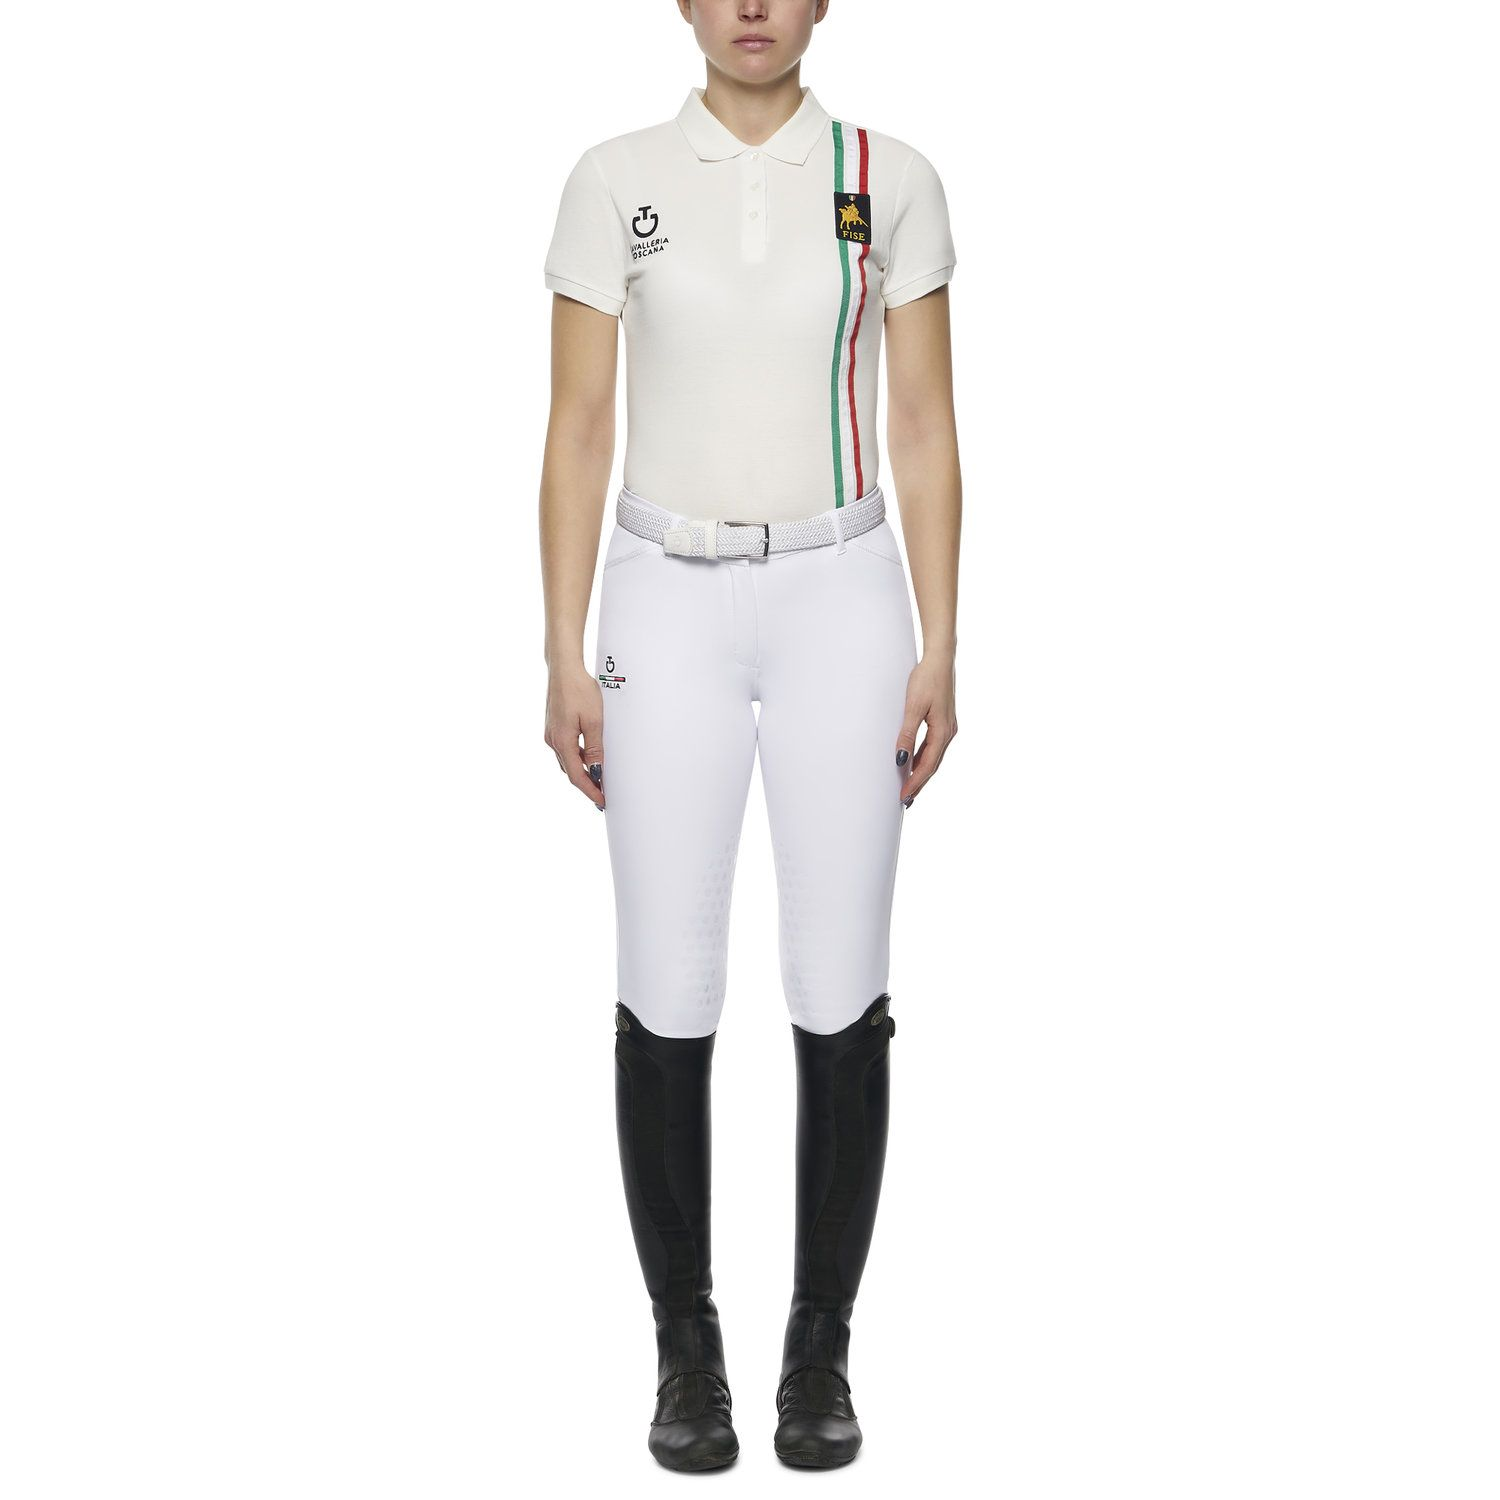 Women's FISE training polo